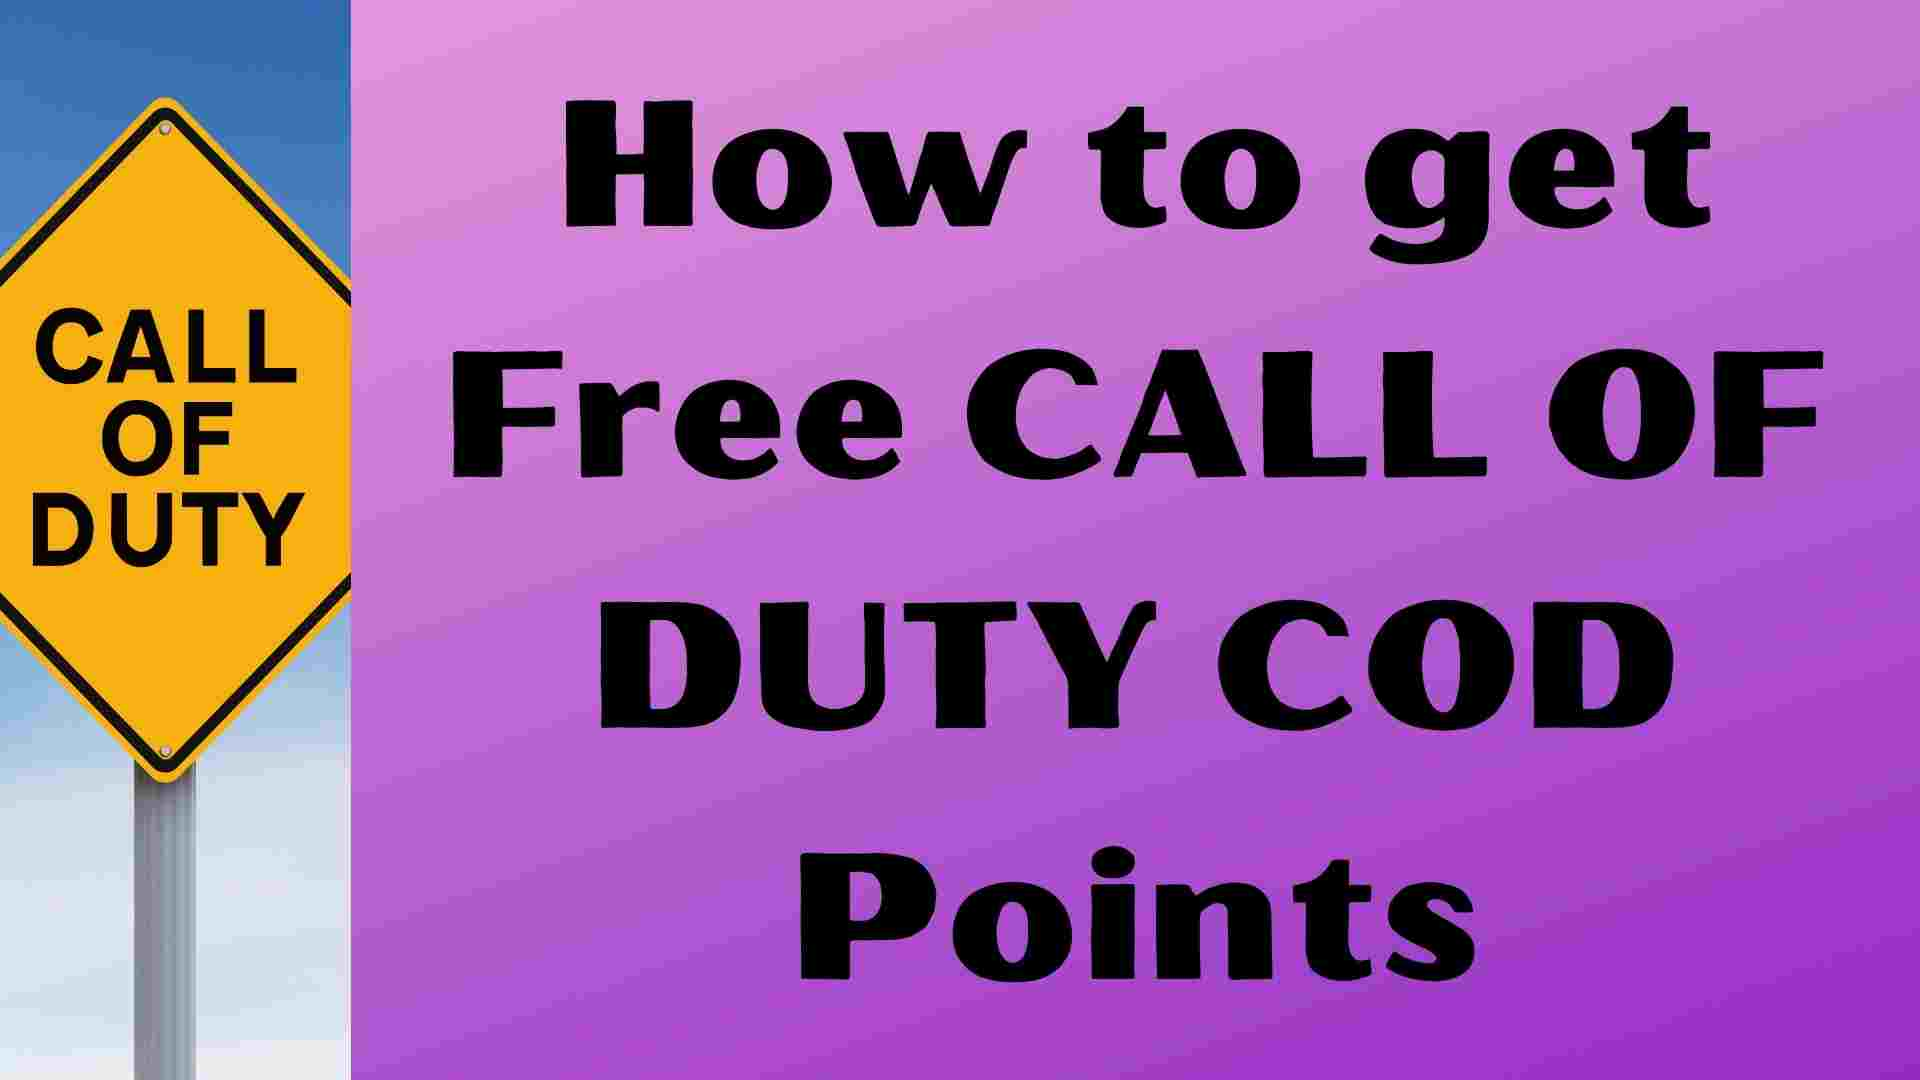 How to get Free Call Of Duty COD Points